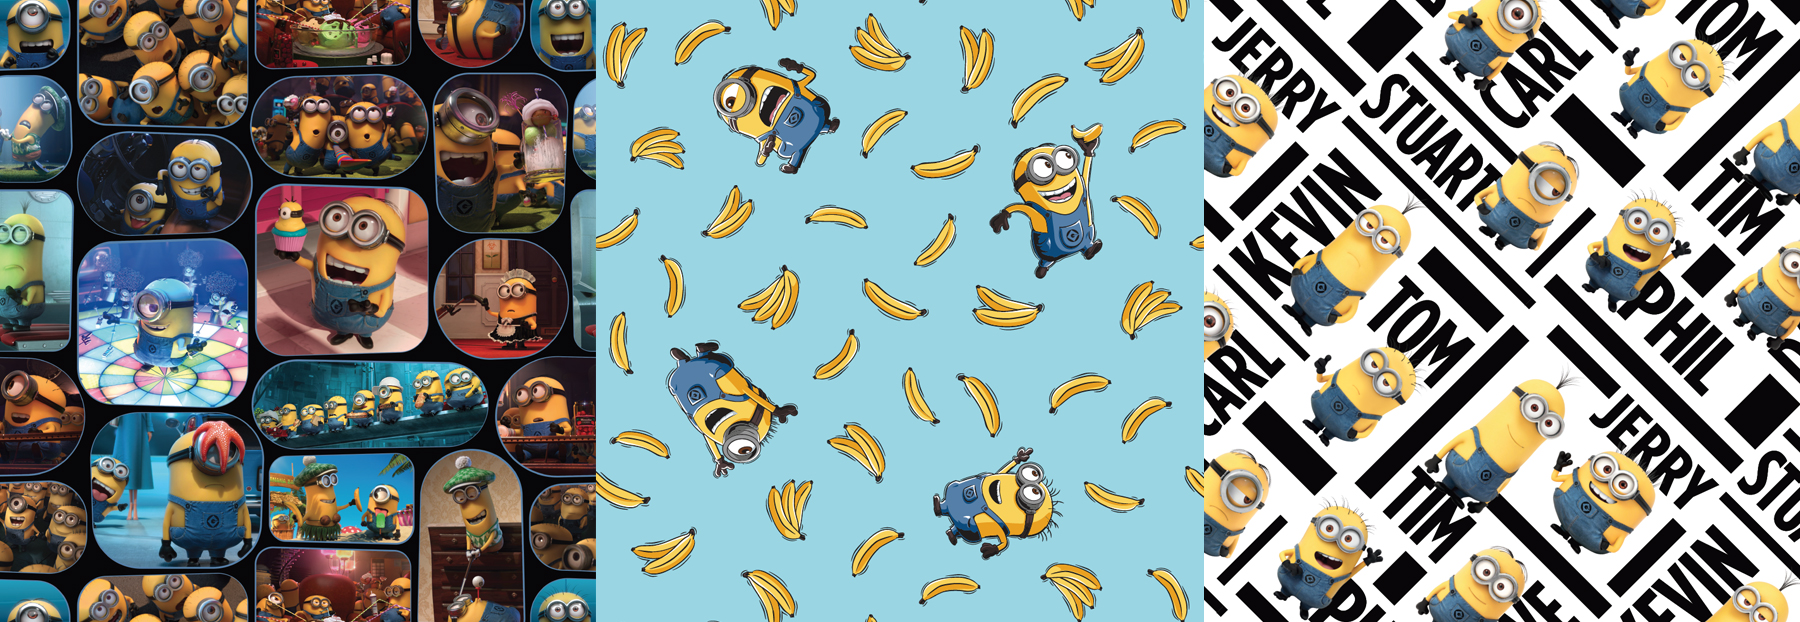 Minions Character Pattern Style Guide Design - Thumb 3